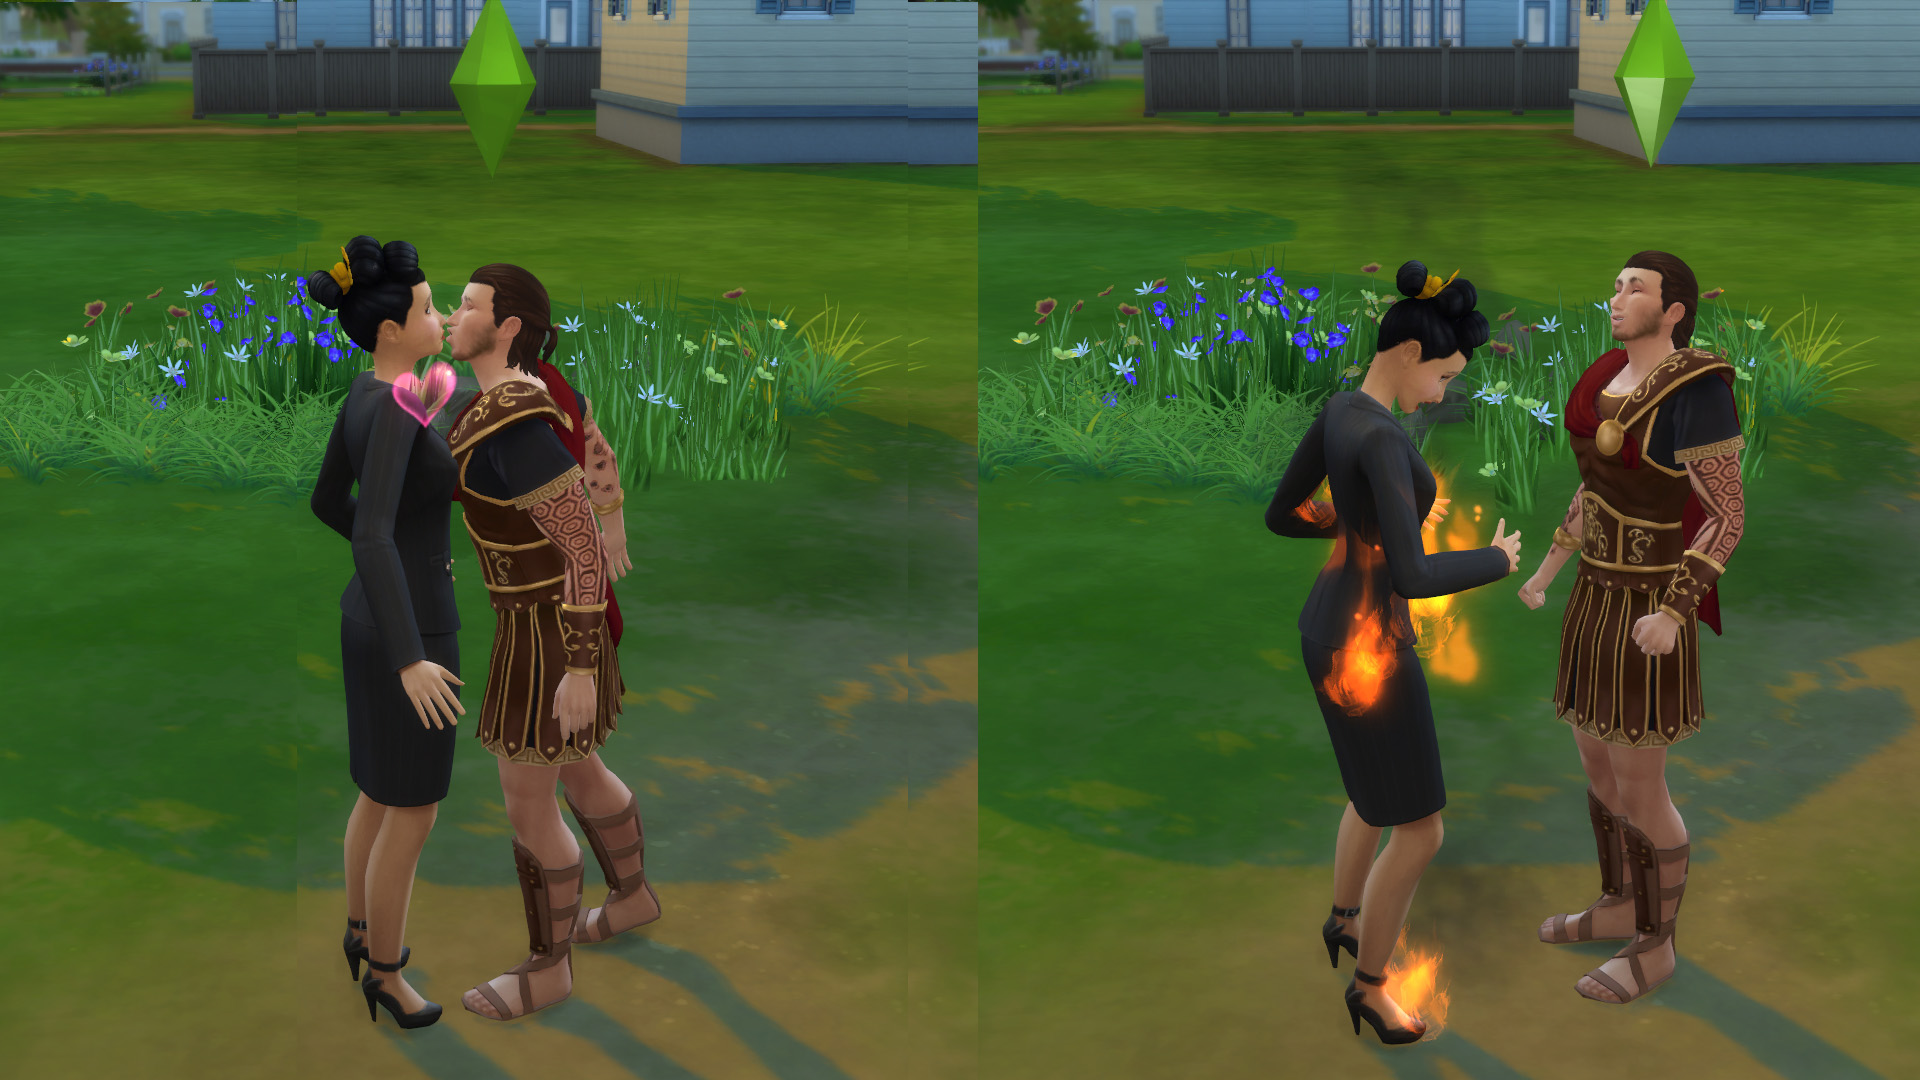 Mod The Sims - TS4 Torture & Chaos V 1 3